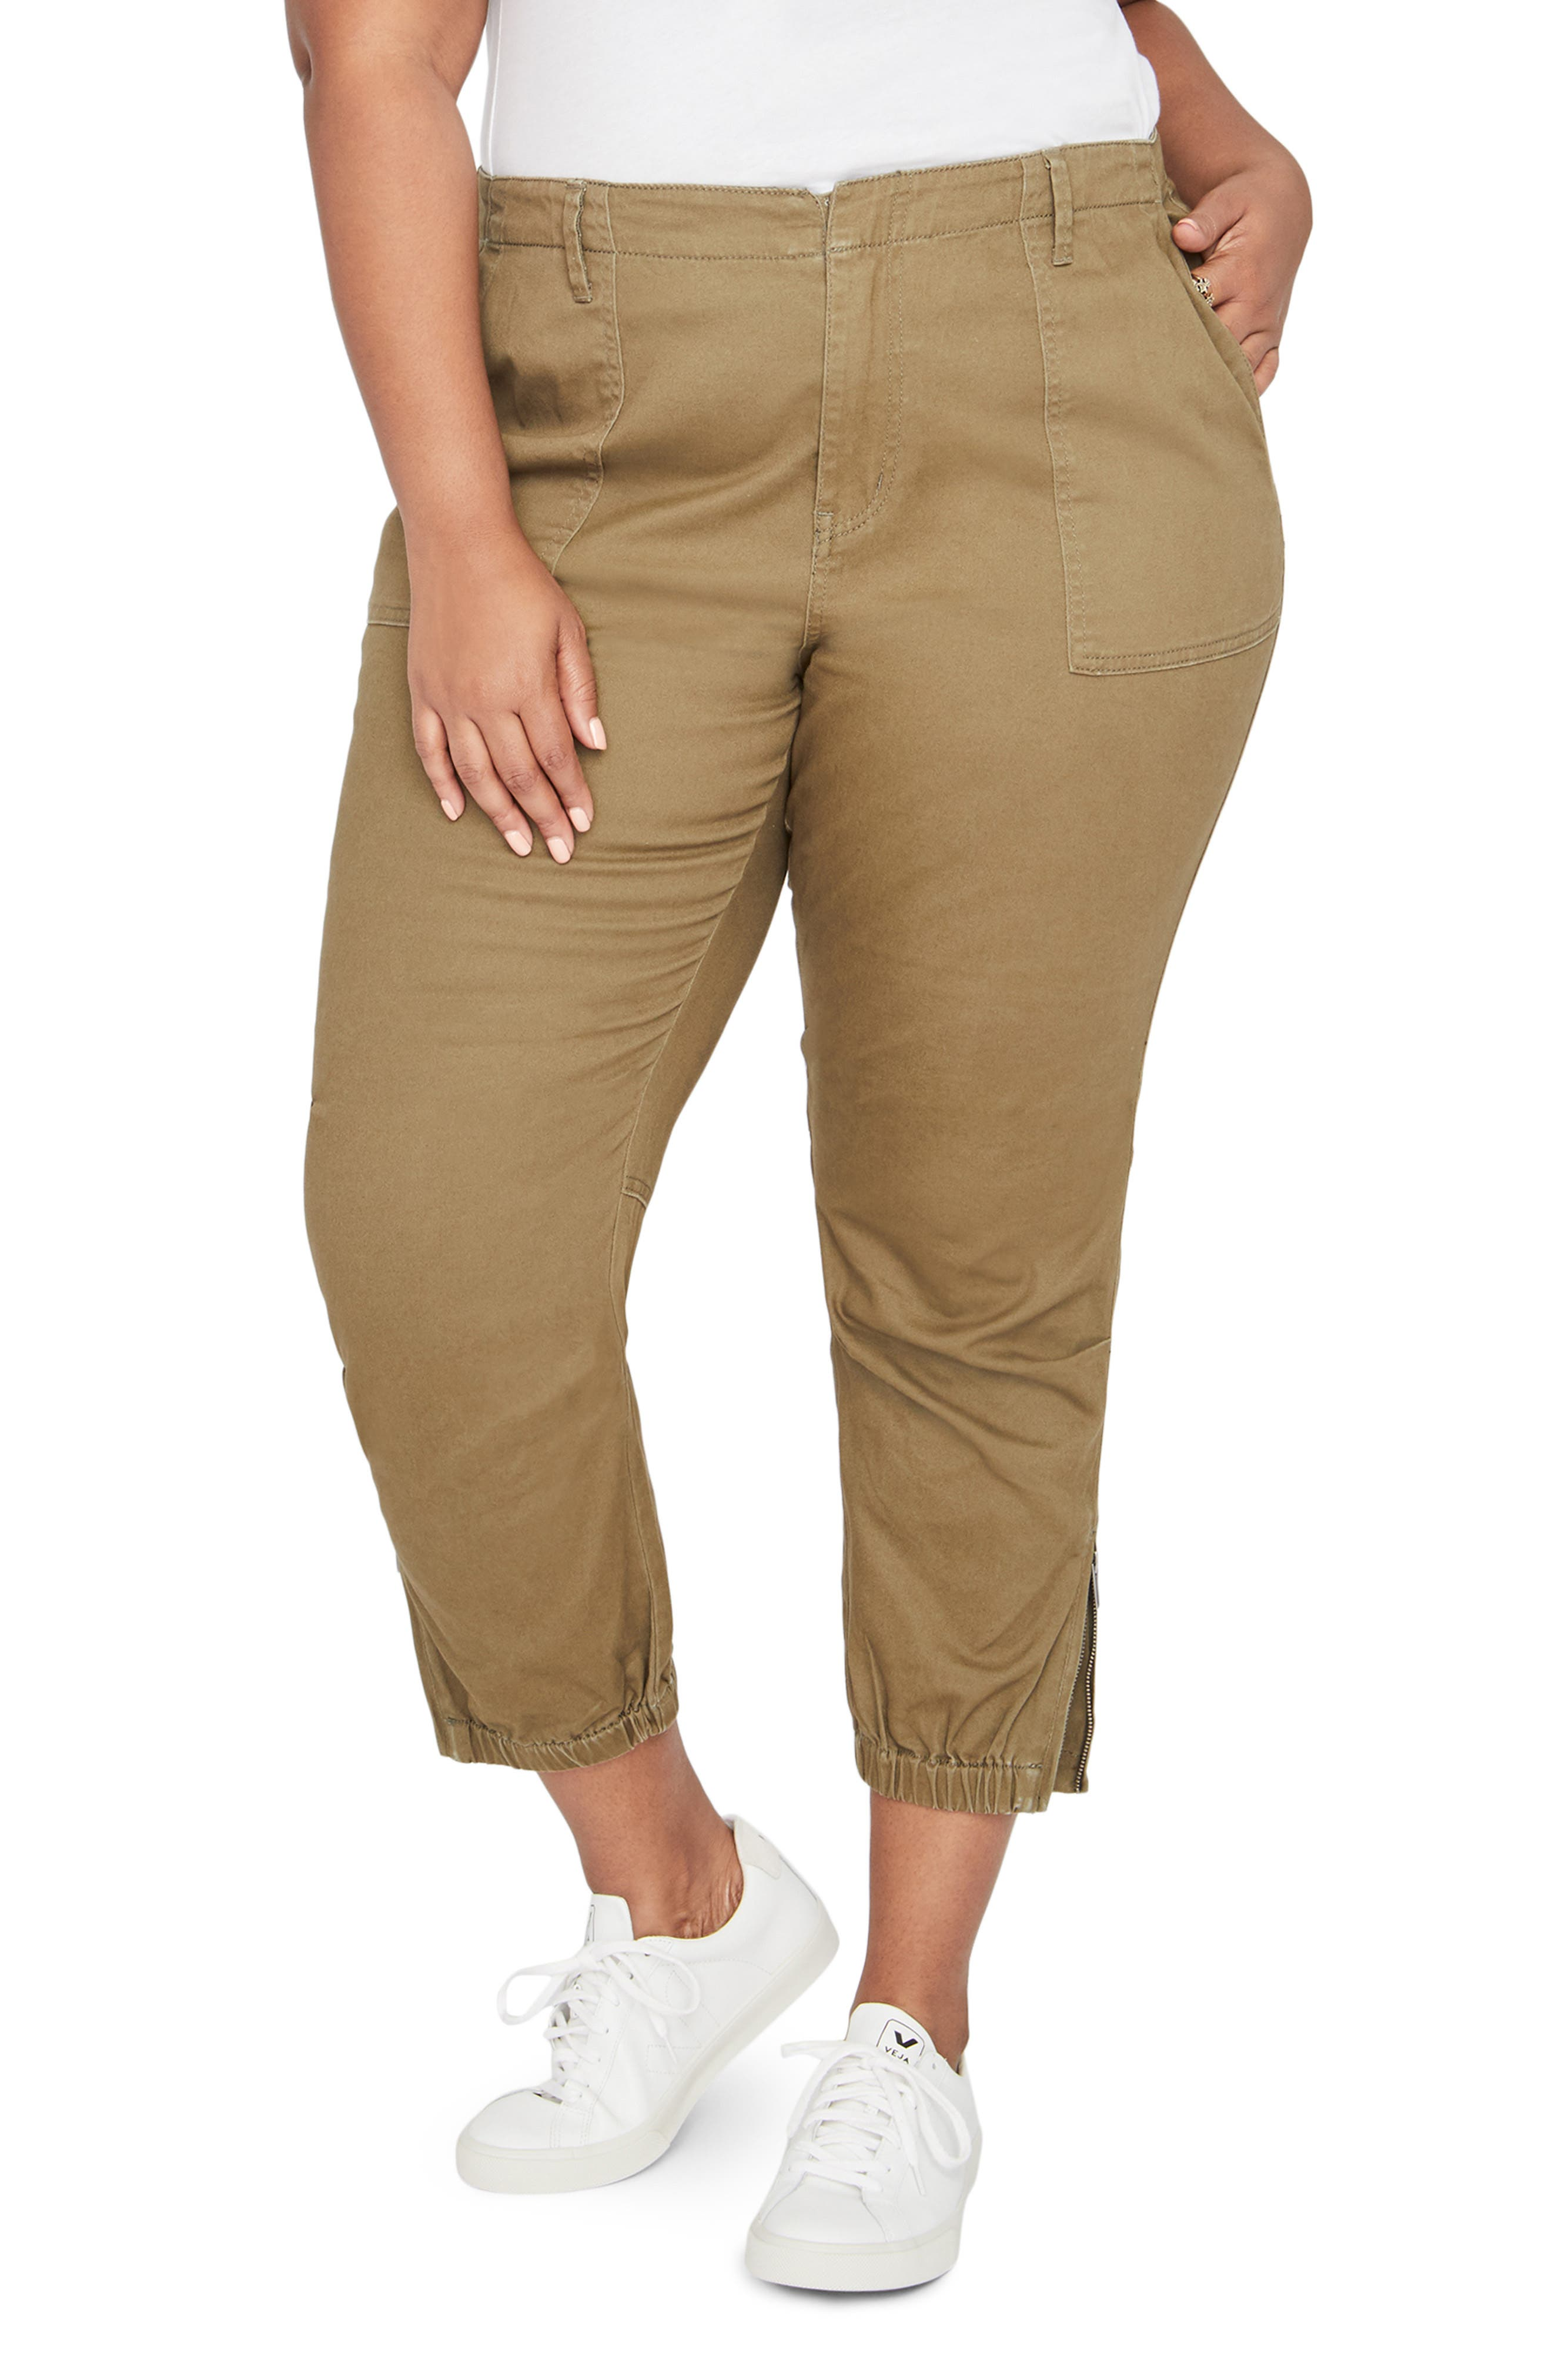 Army High Rise Crop Military Pants,                             Alternate thumbnail 2, color,                             312